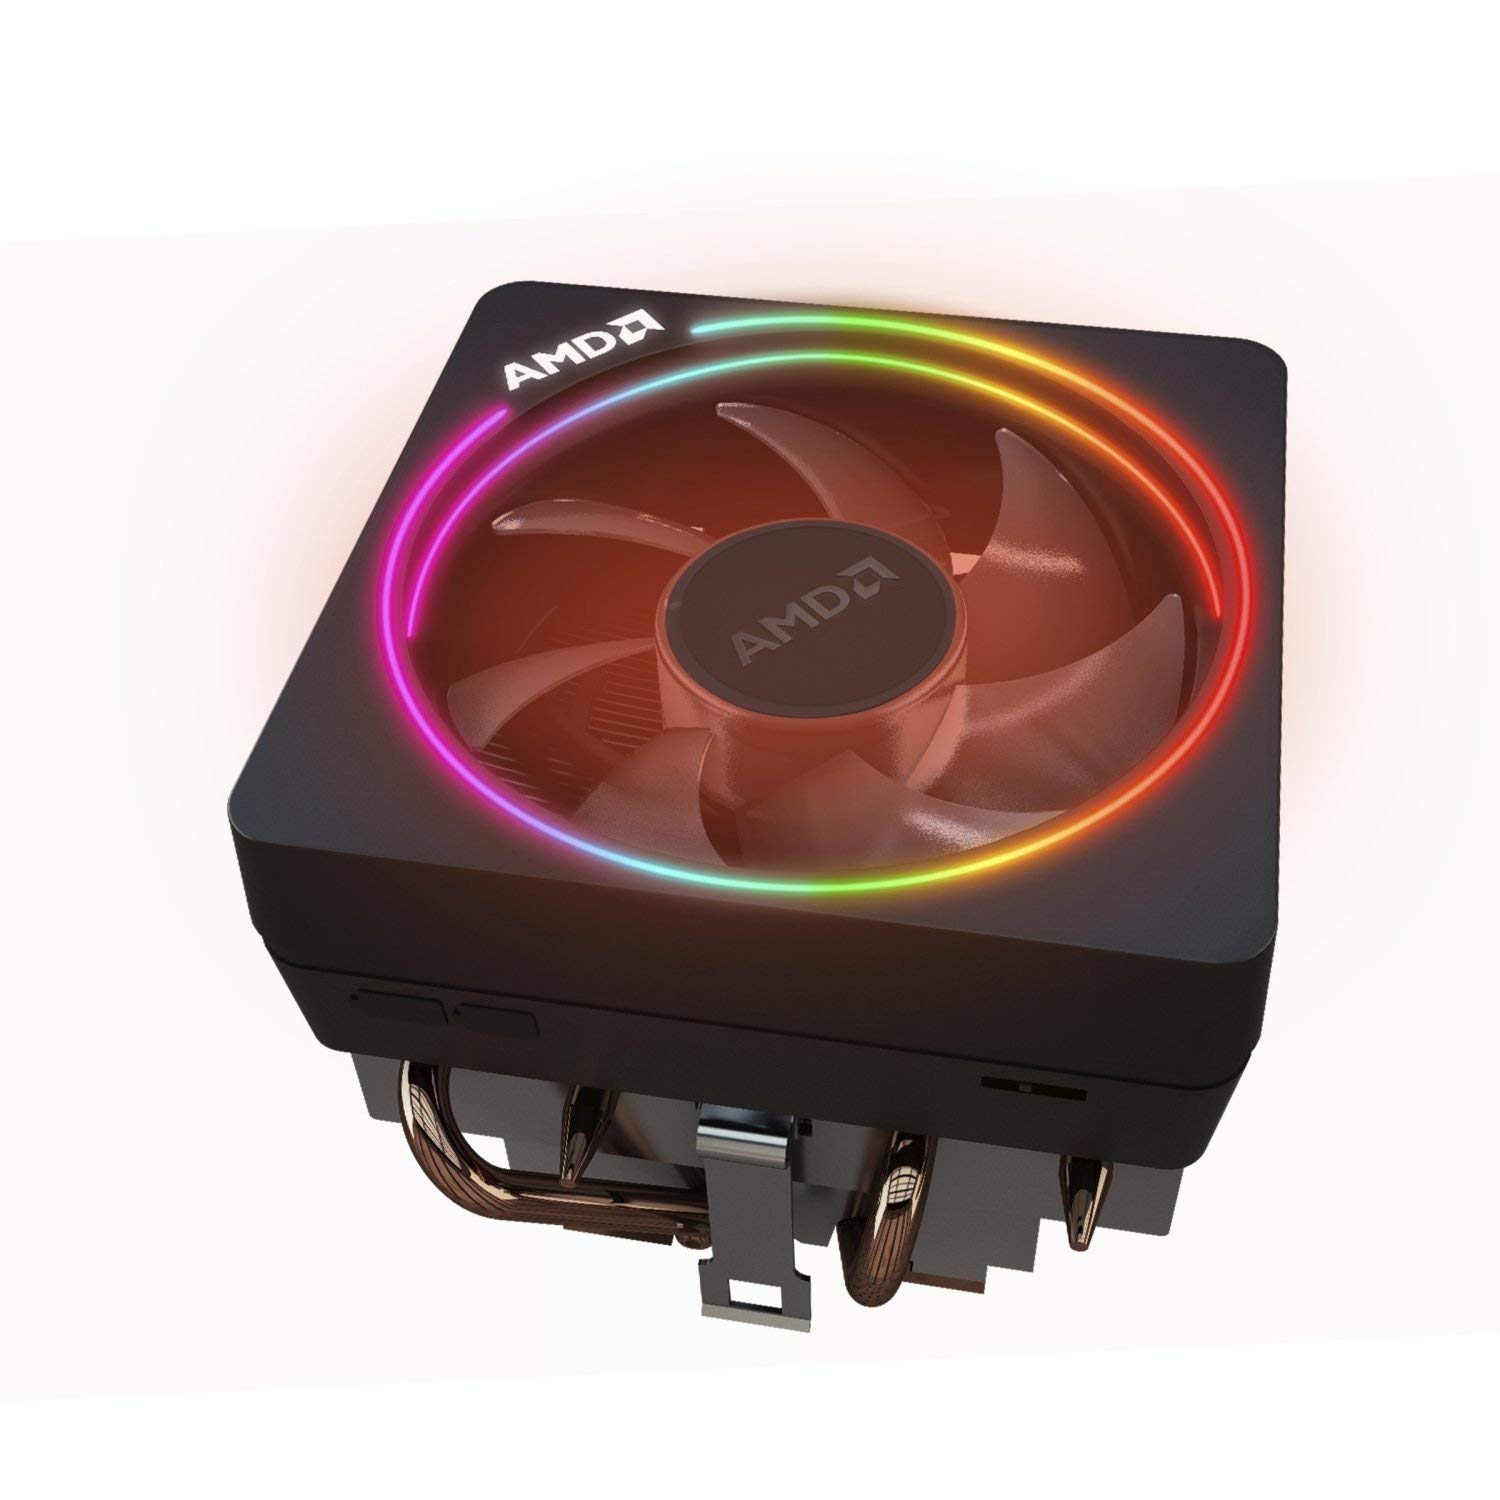 AMD Wraith Prism LED RGB Cooler Fan from Ryzen 7 2700X Processor AM4/AM2/AM3/AM3+ 4-Pin Connector Copper Base/Alum Heat Sink